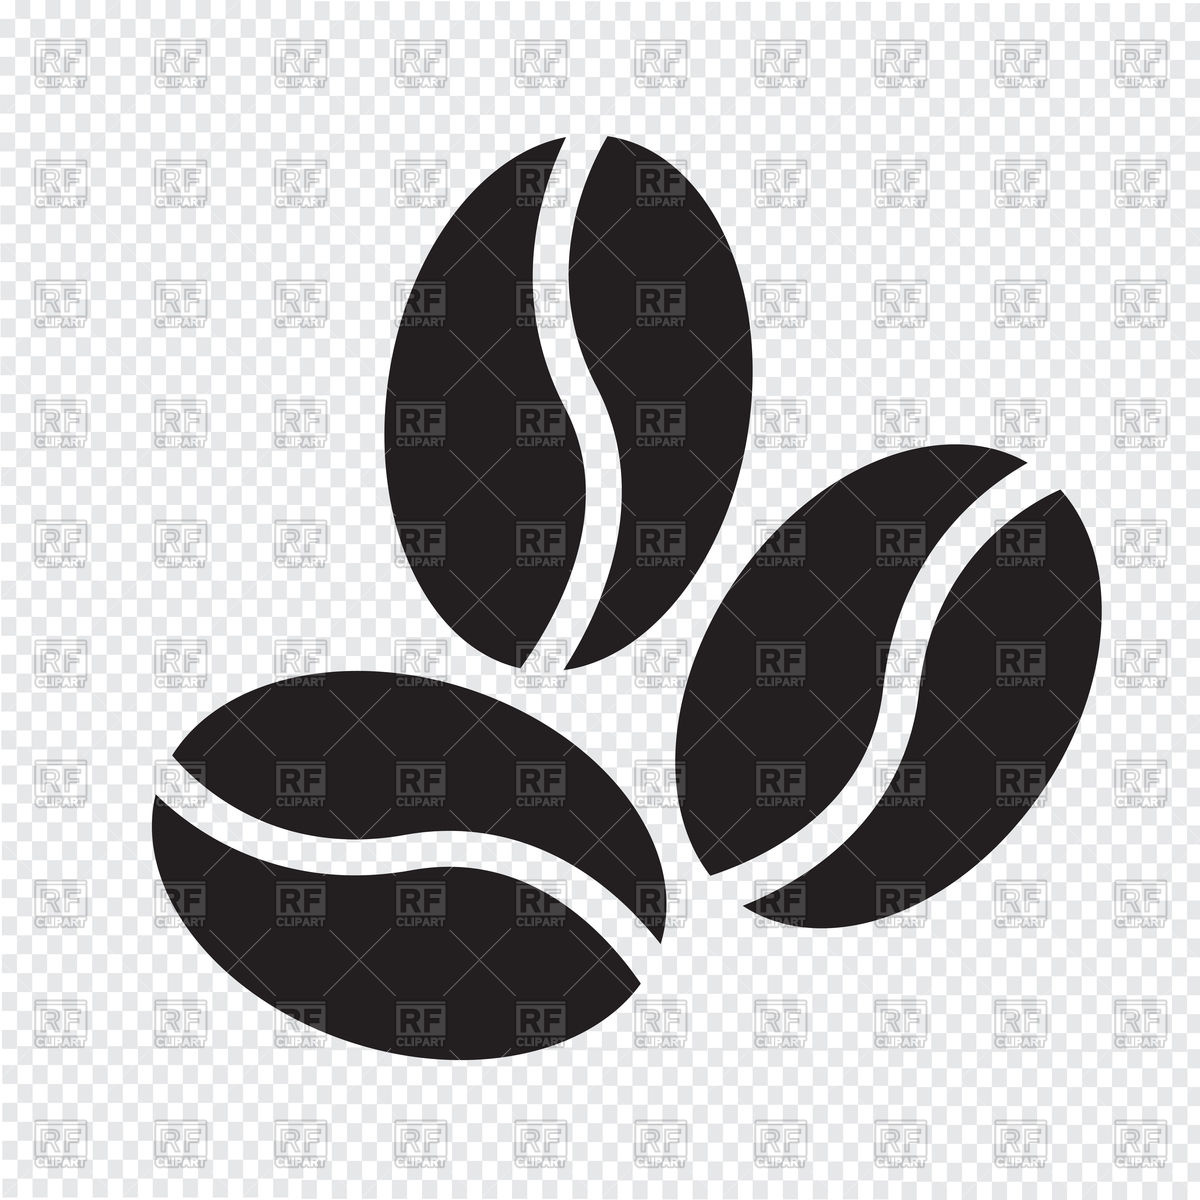 1200x1200 Coffee Beans Icon Vector Image Vector Artwork Of Signs, Symbols